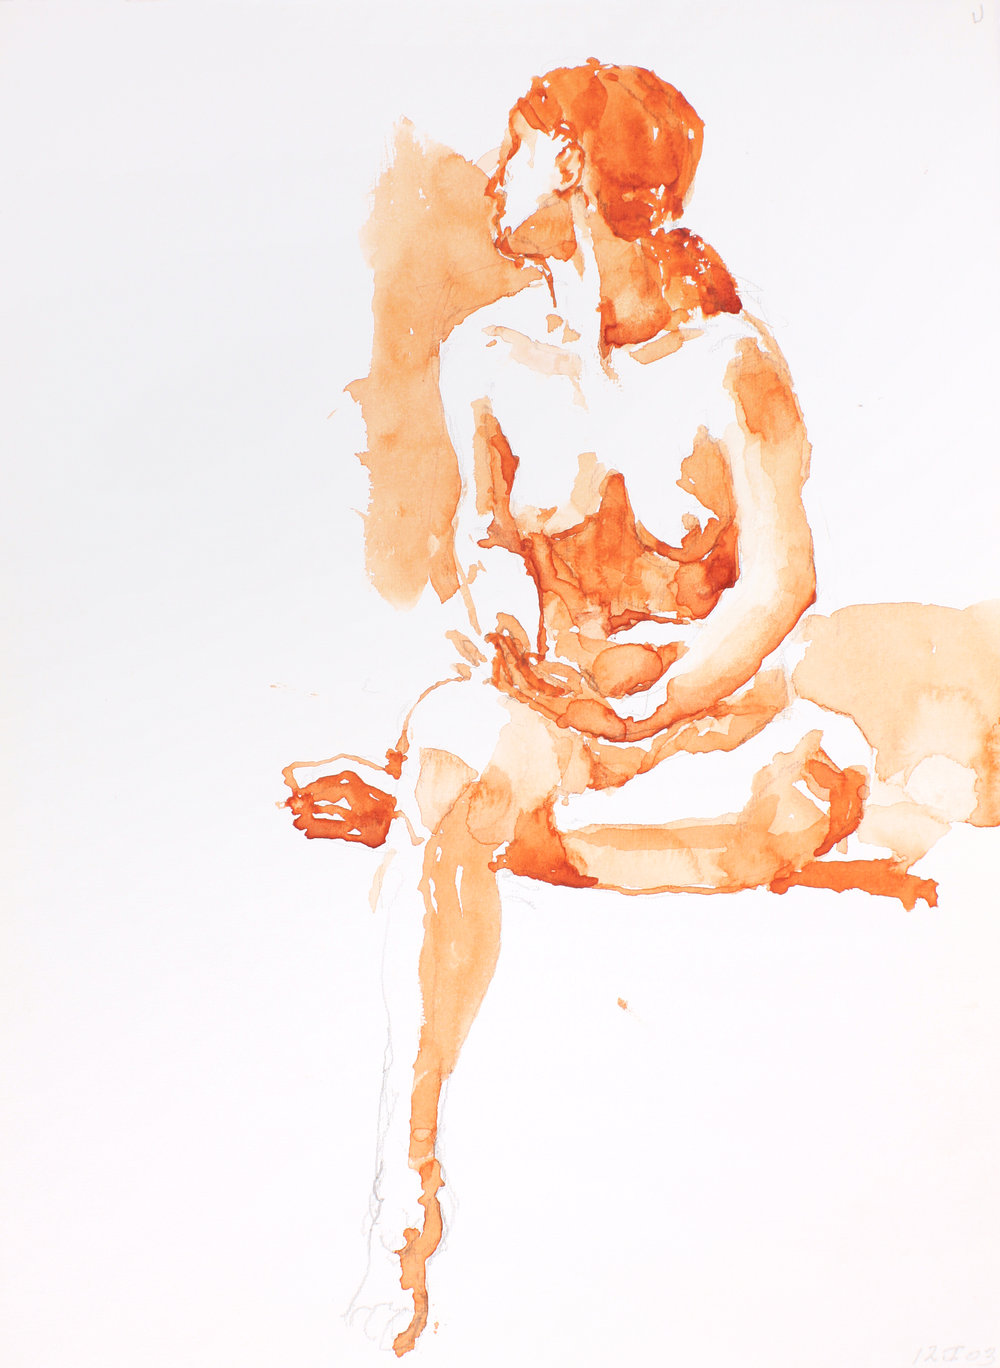 2003_Seated_Nude_with_Right_Leg_Bent_Under_Left_with_Head_Turned_Left_watercolour_on_paper_15x11in_WPF230.jpg